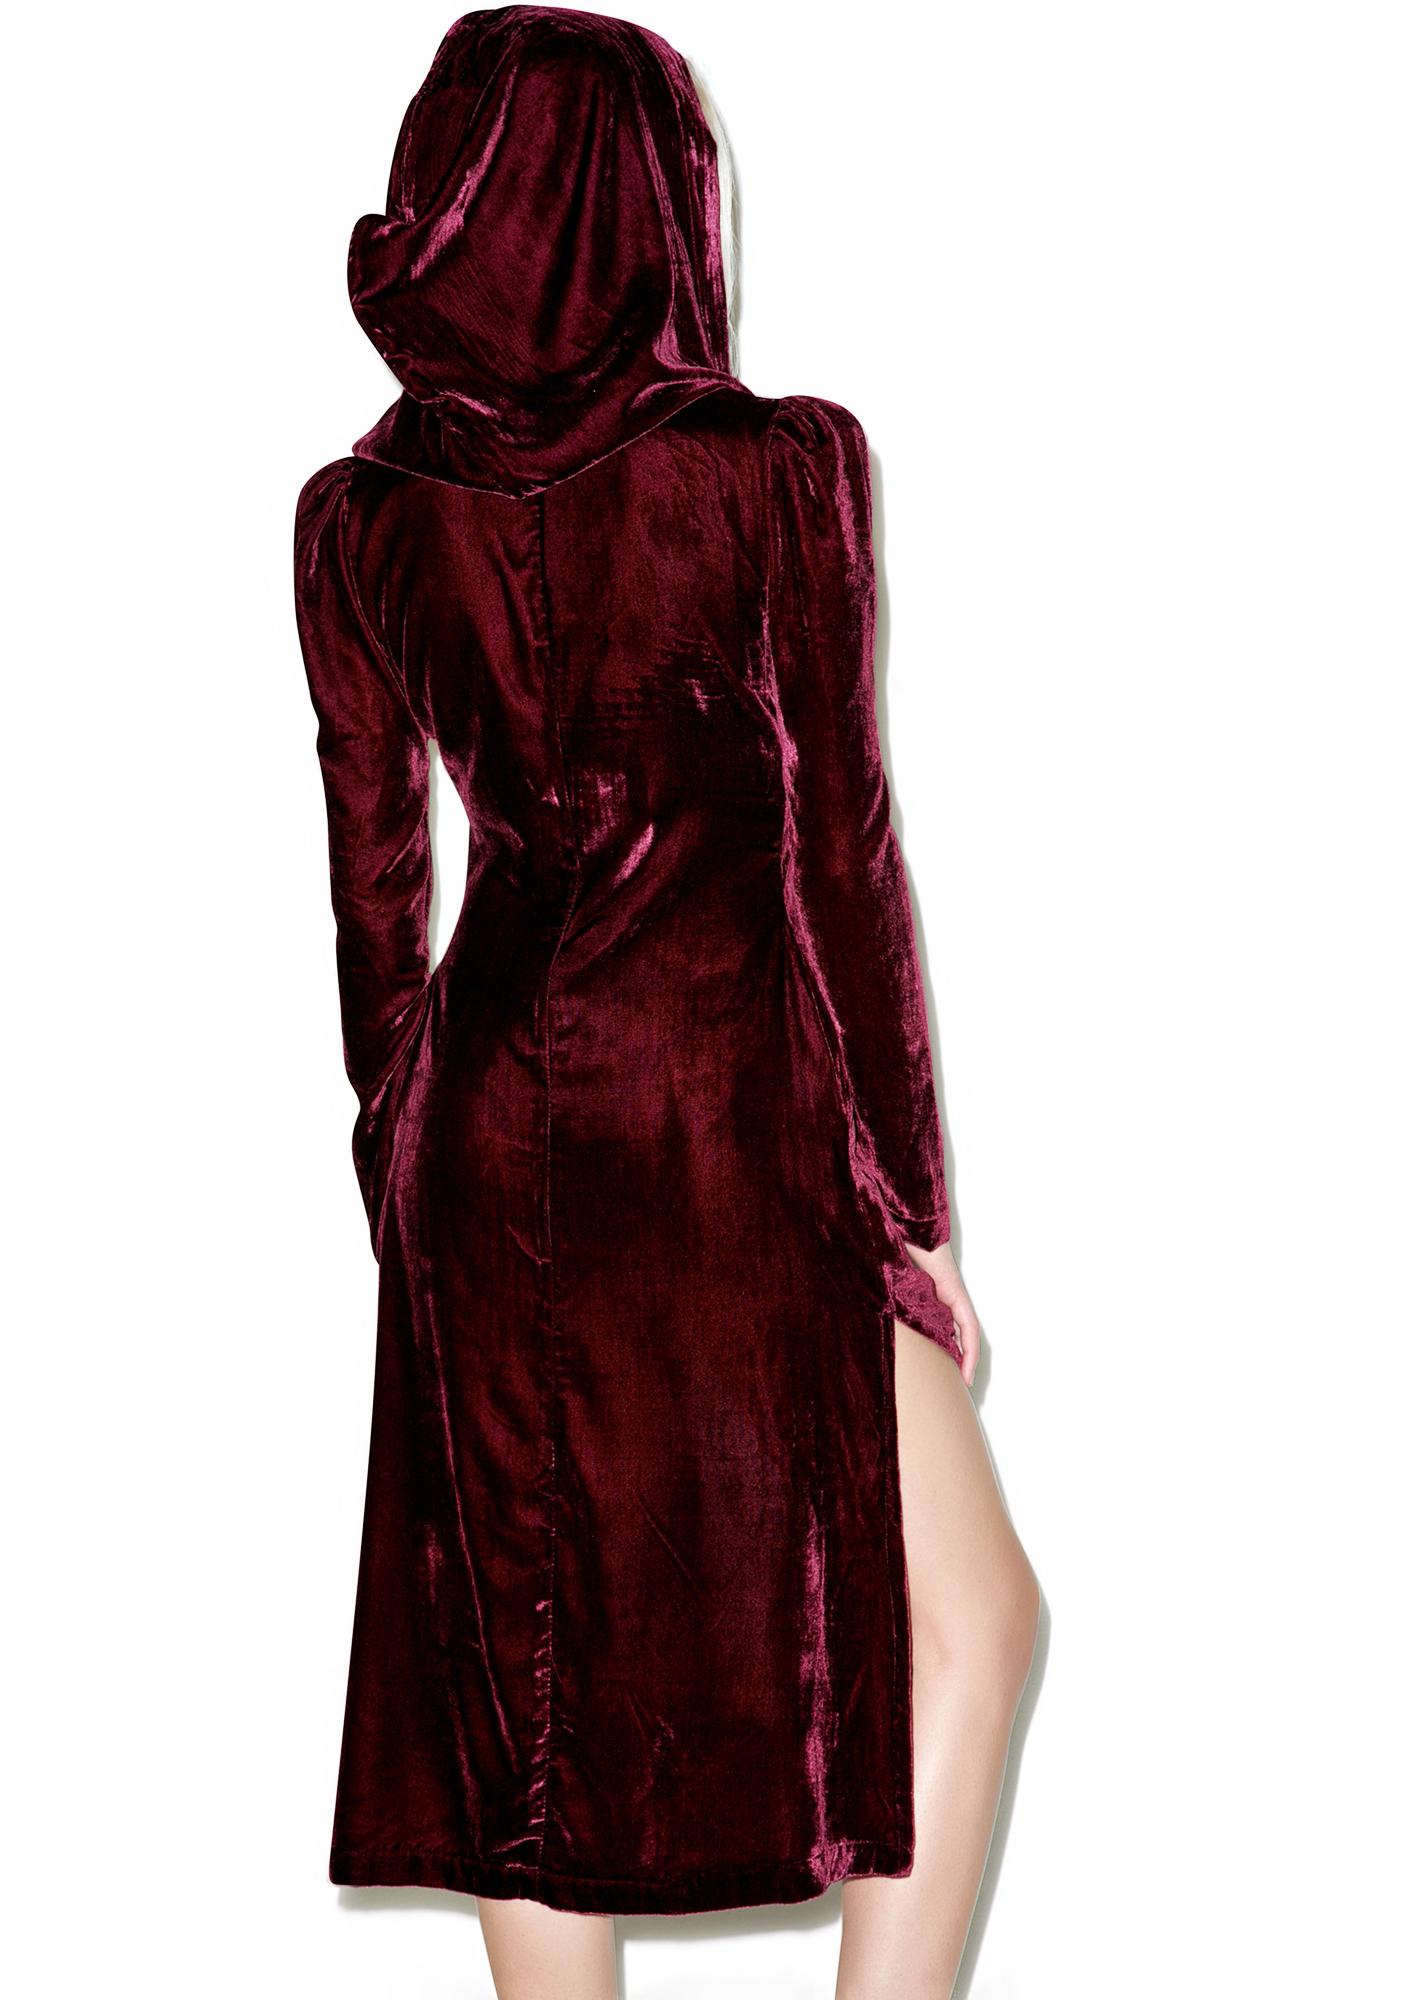 Widow Spectre Oxblood Velvet Hooded Jacket